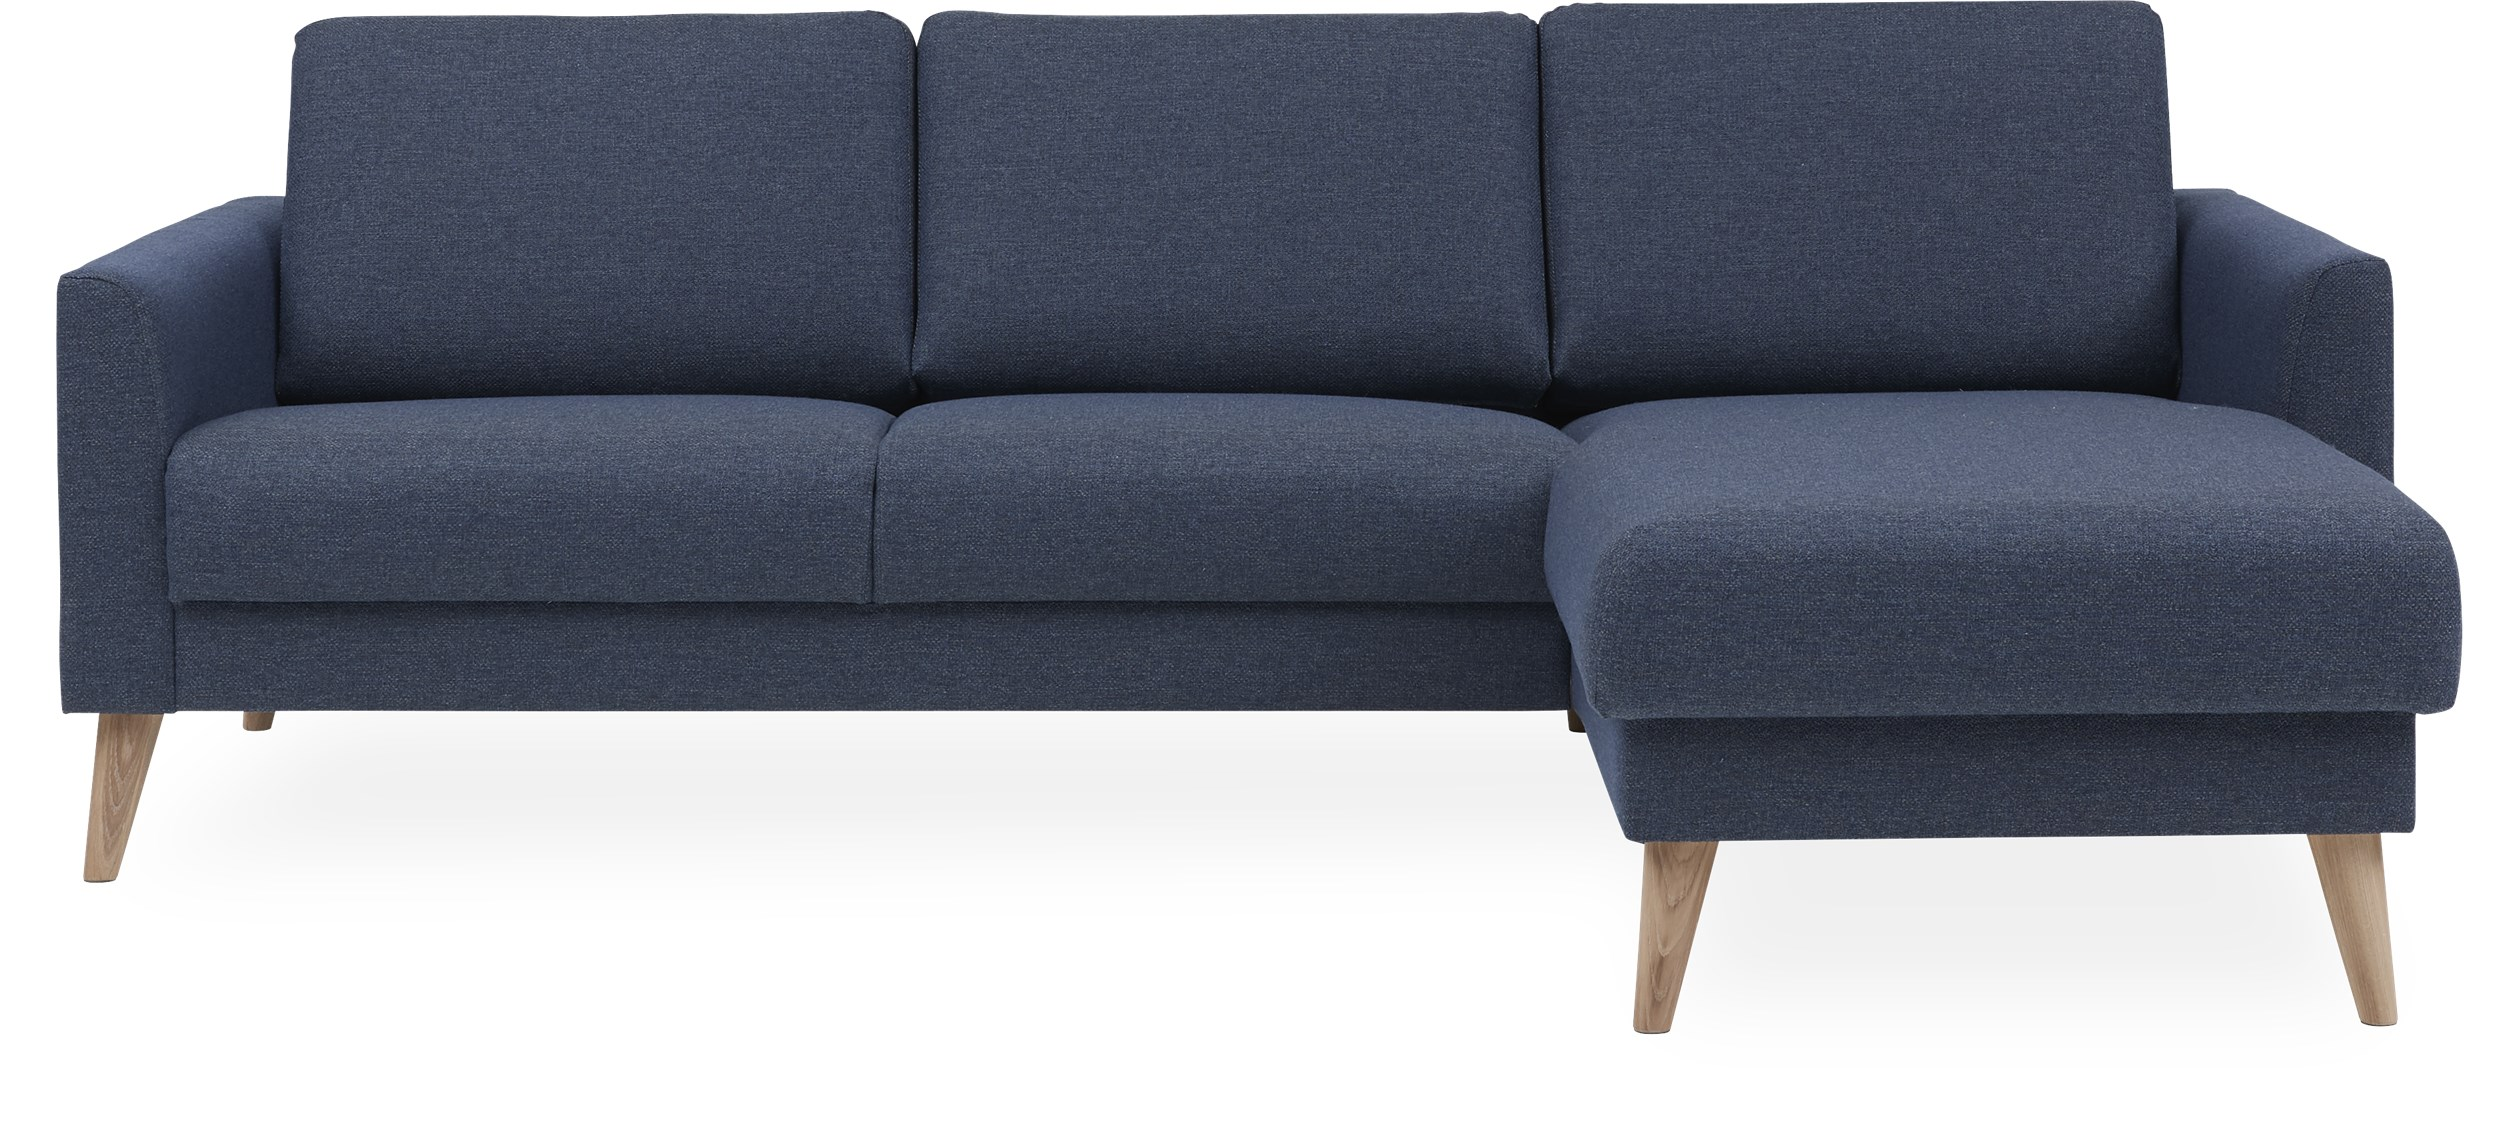 Lotus Sofa med chaiselong - Golf Blue stof og ben i hvidolieret eg